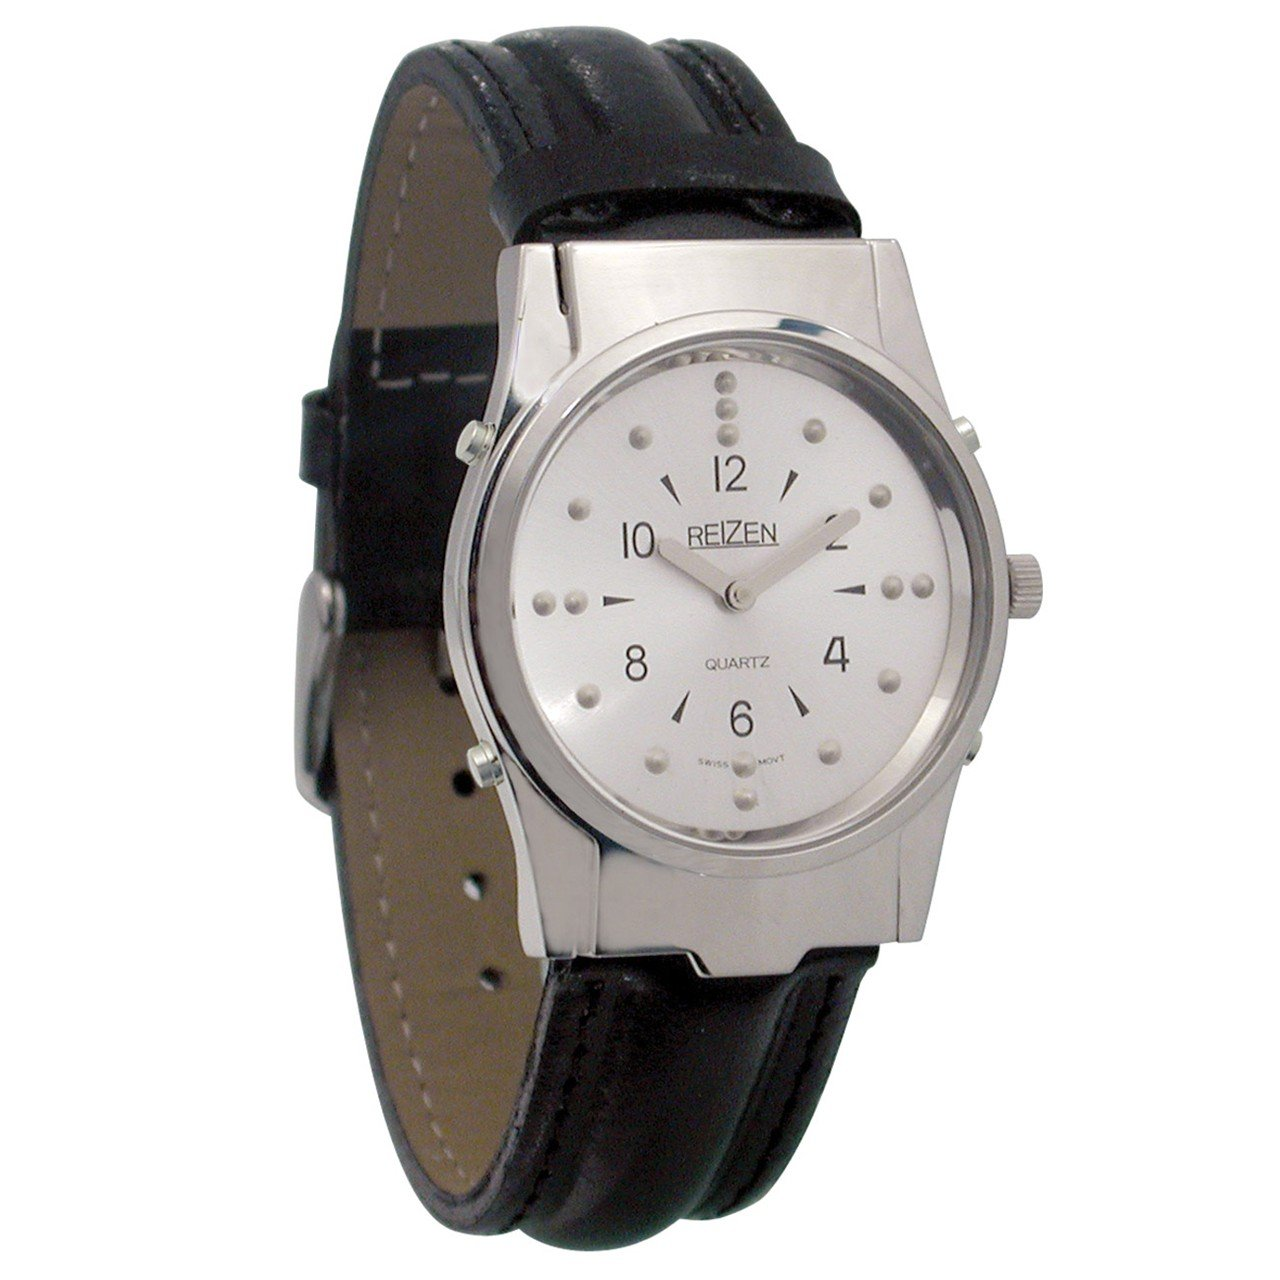 Mens Chrome Braille and Talking Watch - Leather Band by Reizen